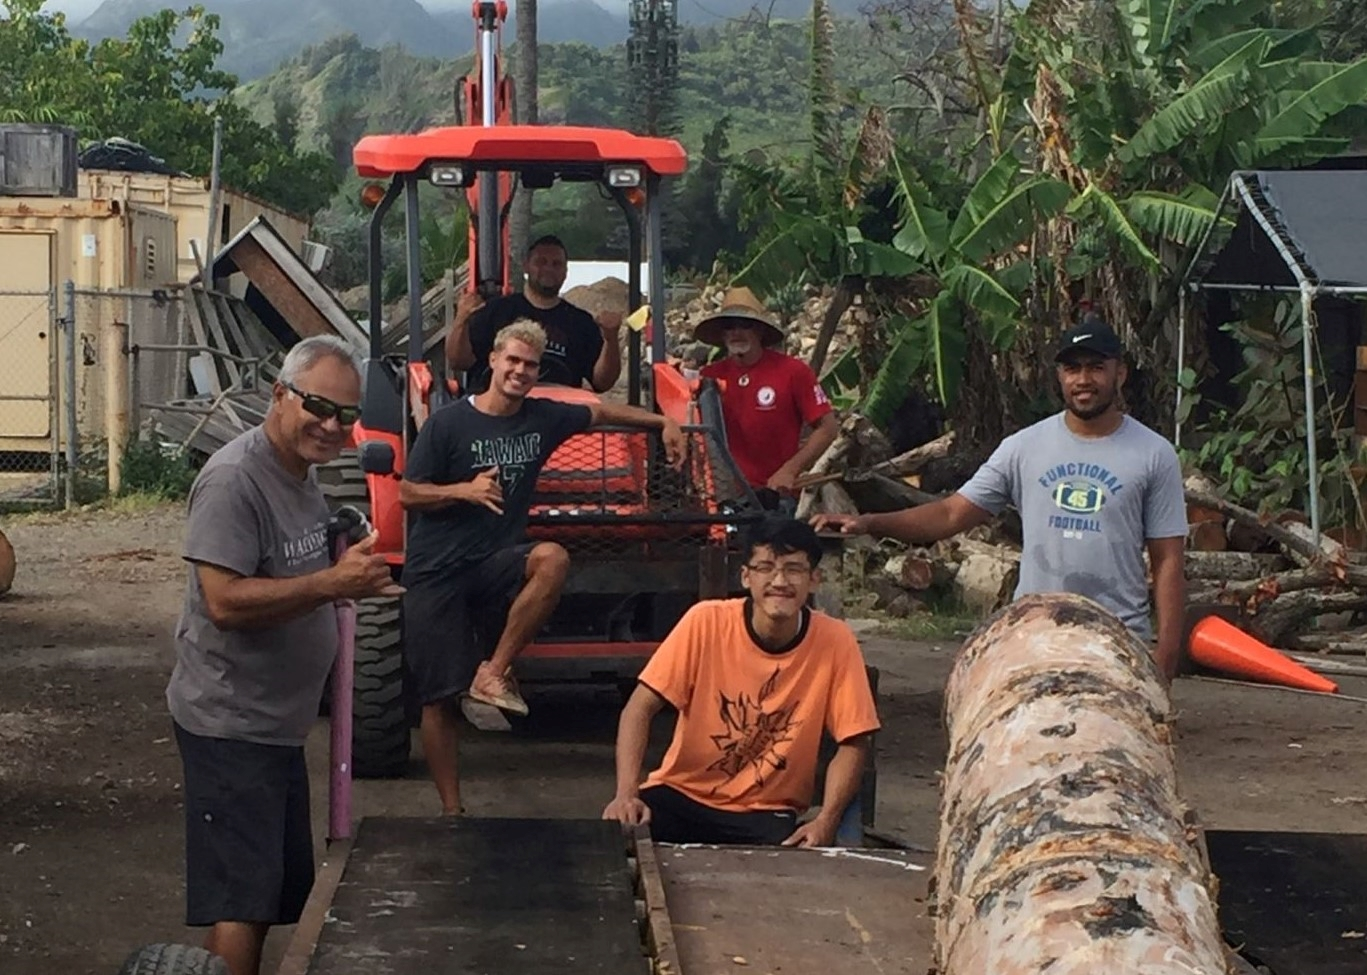 Carvers of Polynesia: Fulfilling the Center's Mission